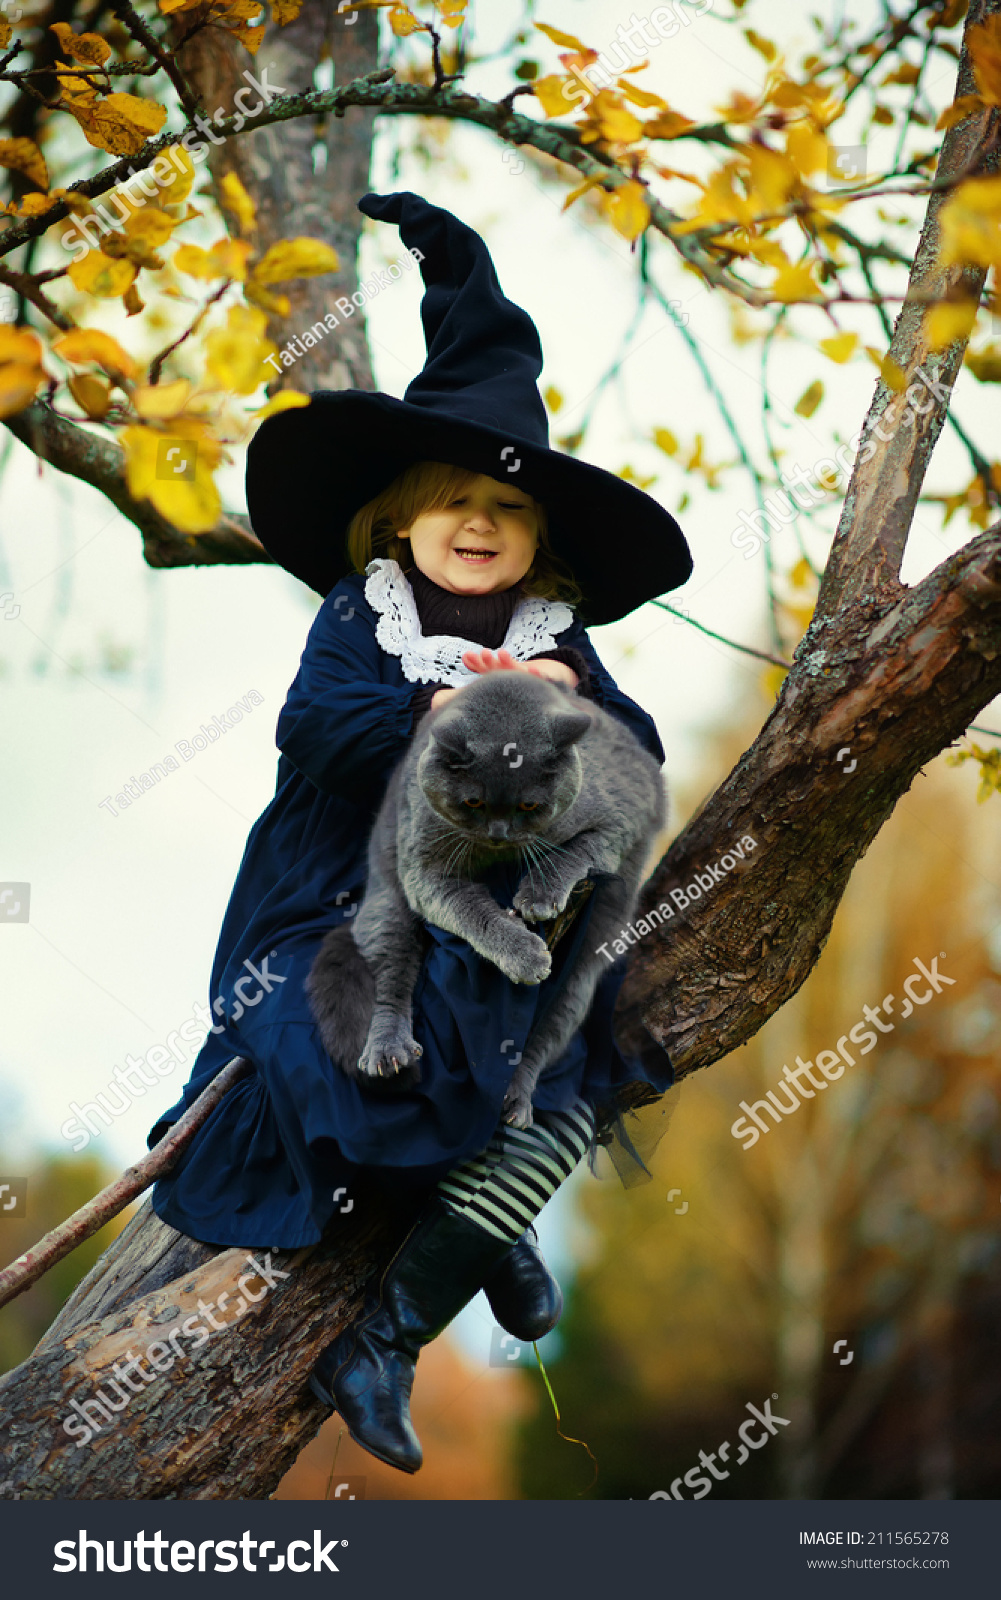 Little Cute Girl Black Witch Costume Stock Photo 211565278 ...